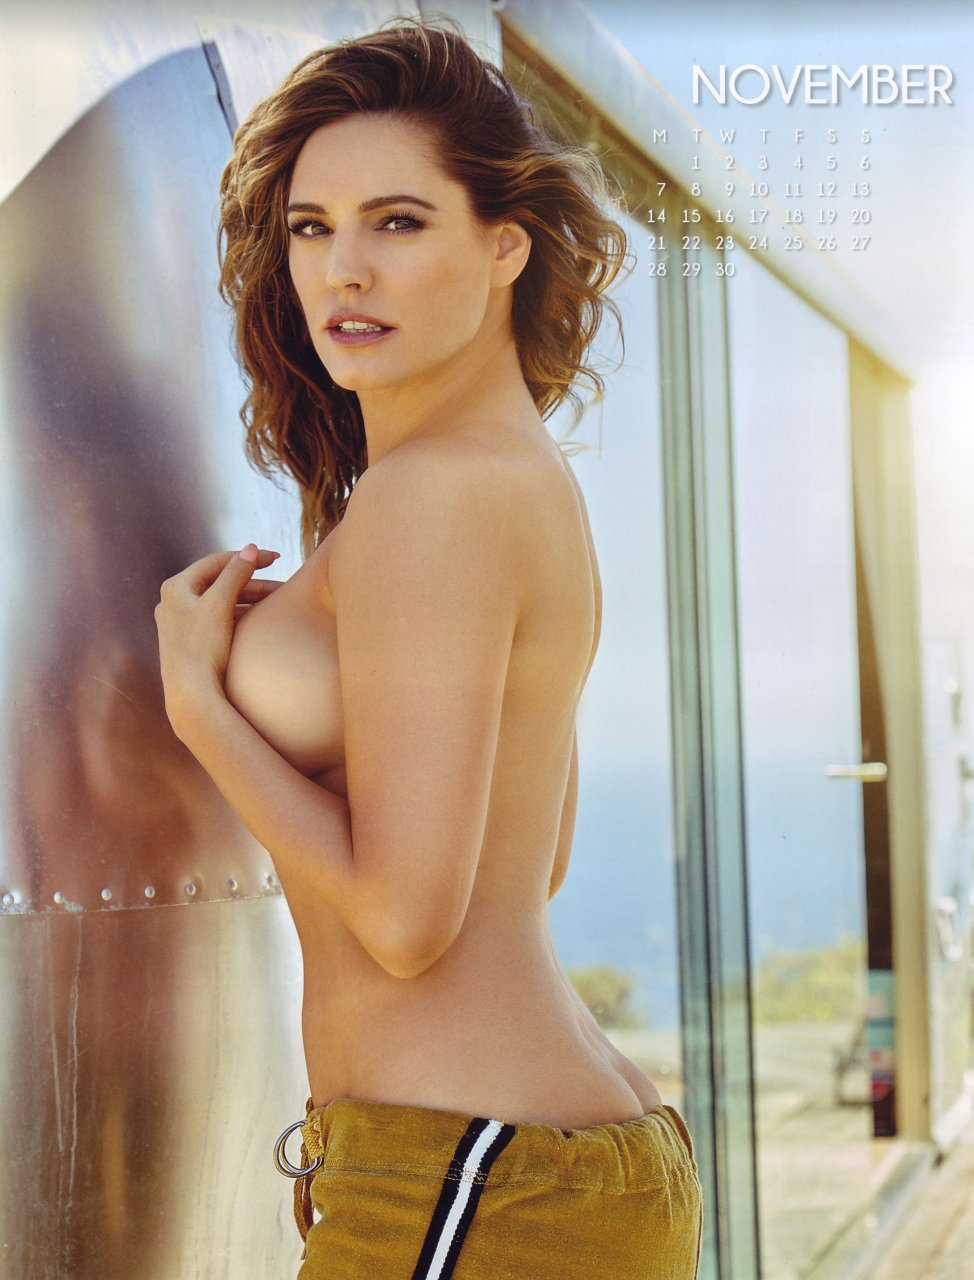 Kelly brook sexy 99 photos nudes (86 images)